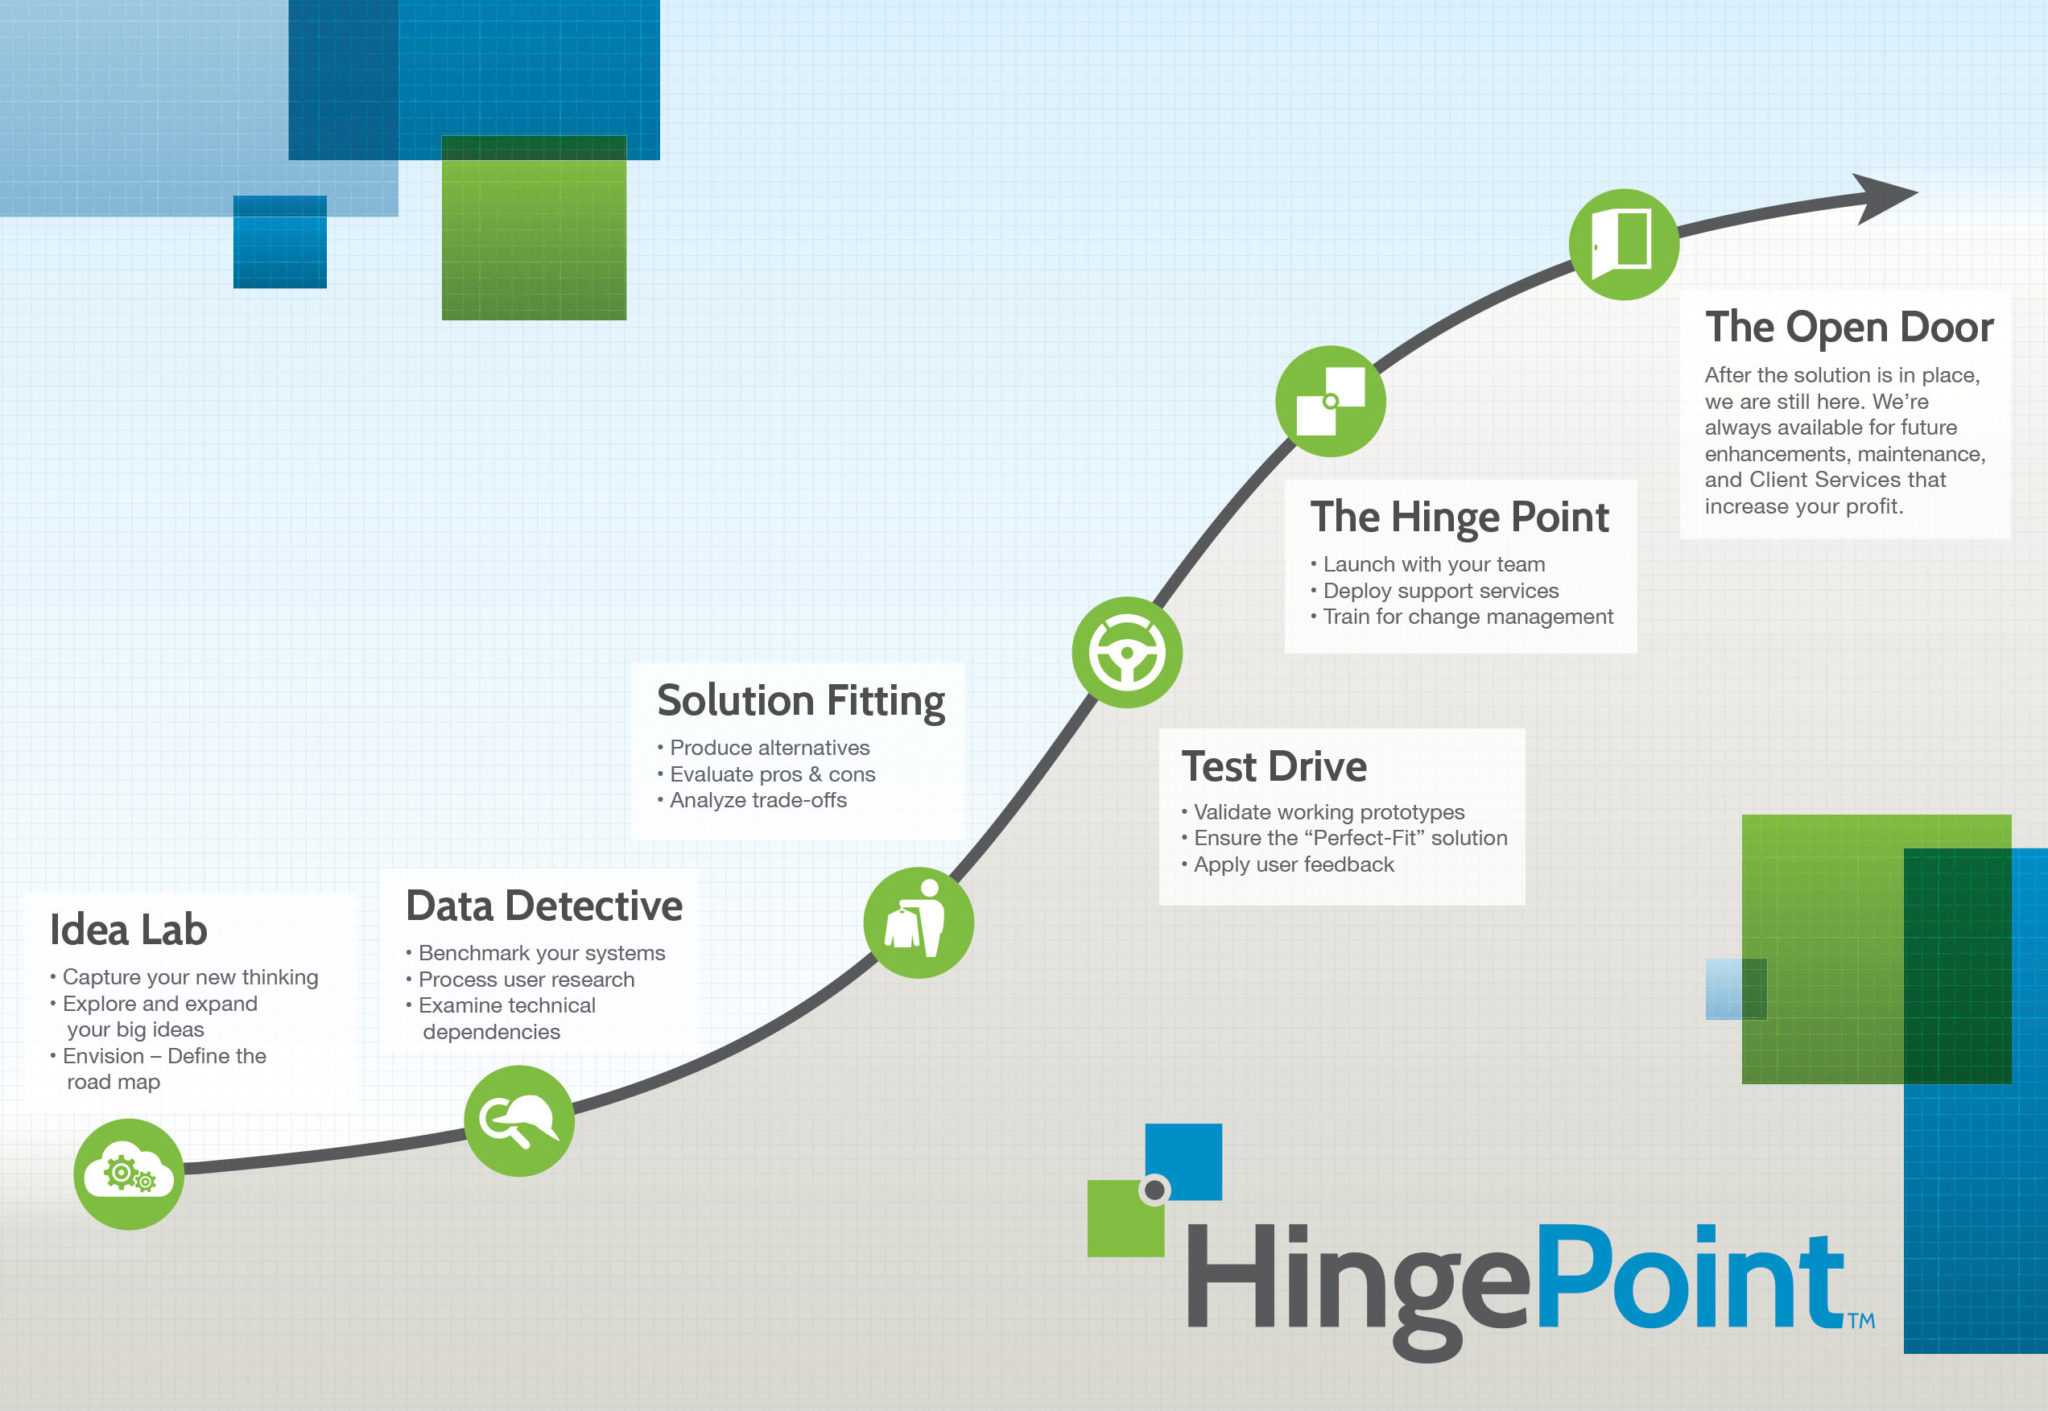 HingePoint | Idea Lab • Data Detective • Solution Fitting • Test Drive